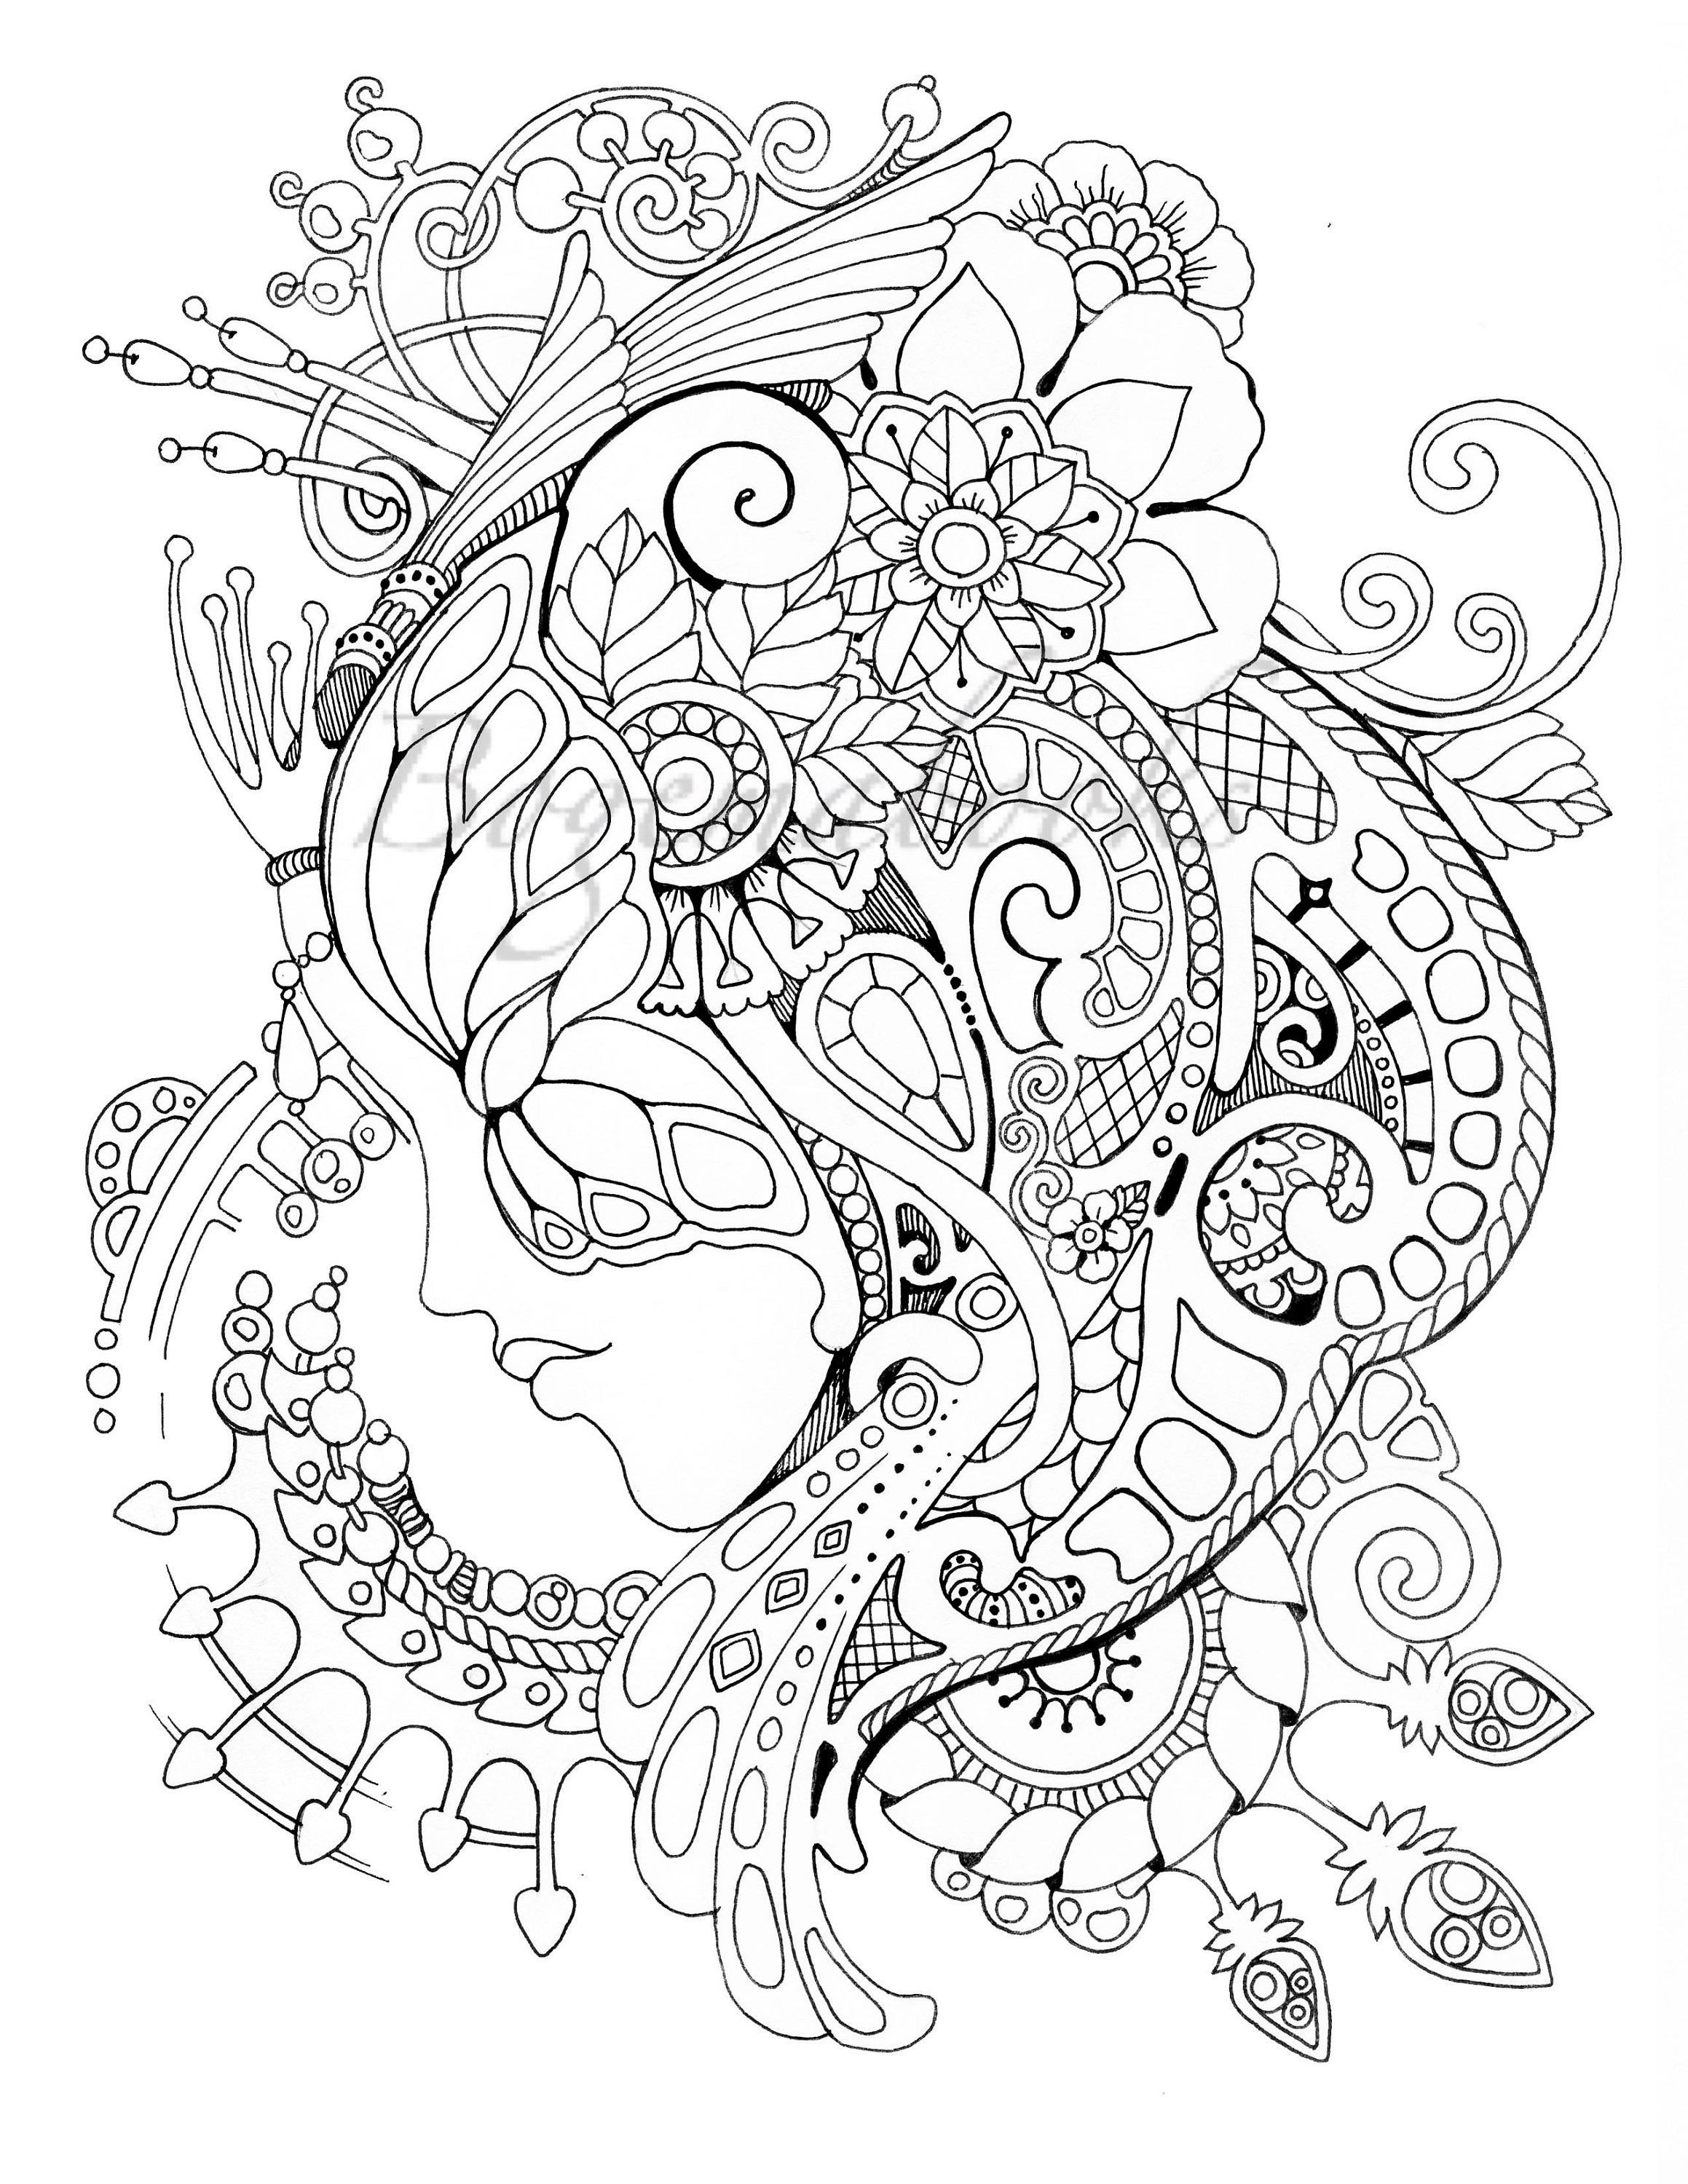 Swear Word Coloring Pages Best Coloring Pages For Kids Words Coloring Book Coloring Book Pages Mandala Coloring Pages